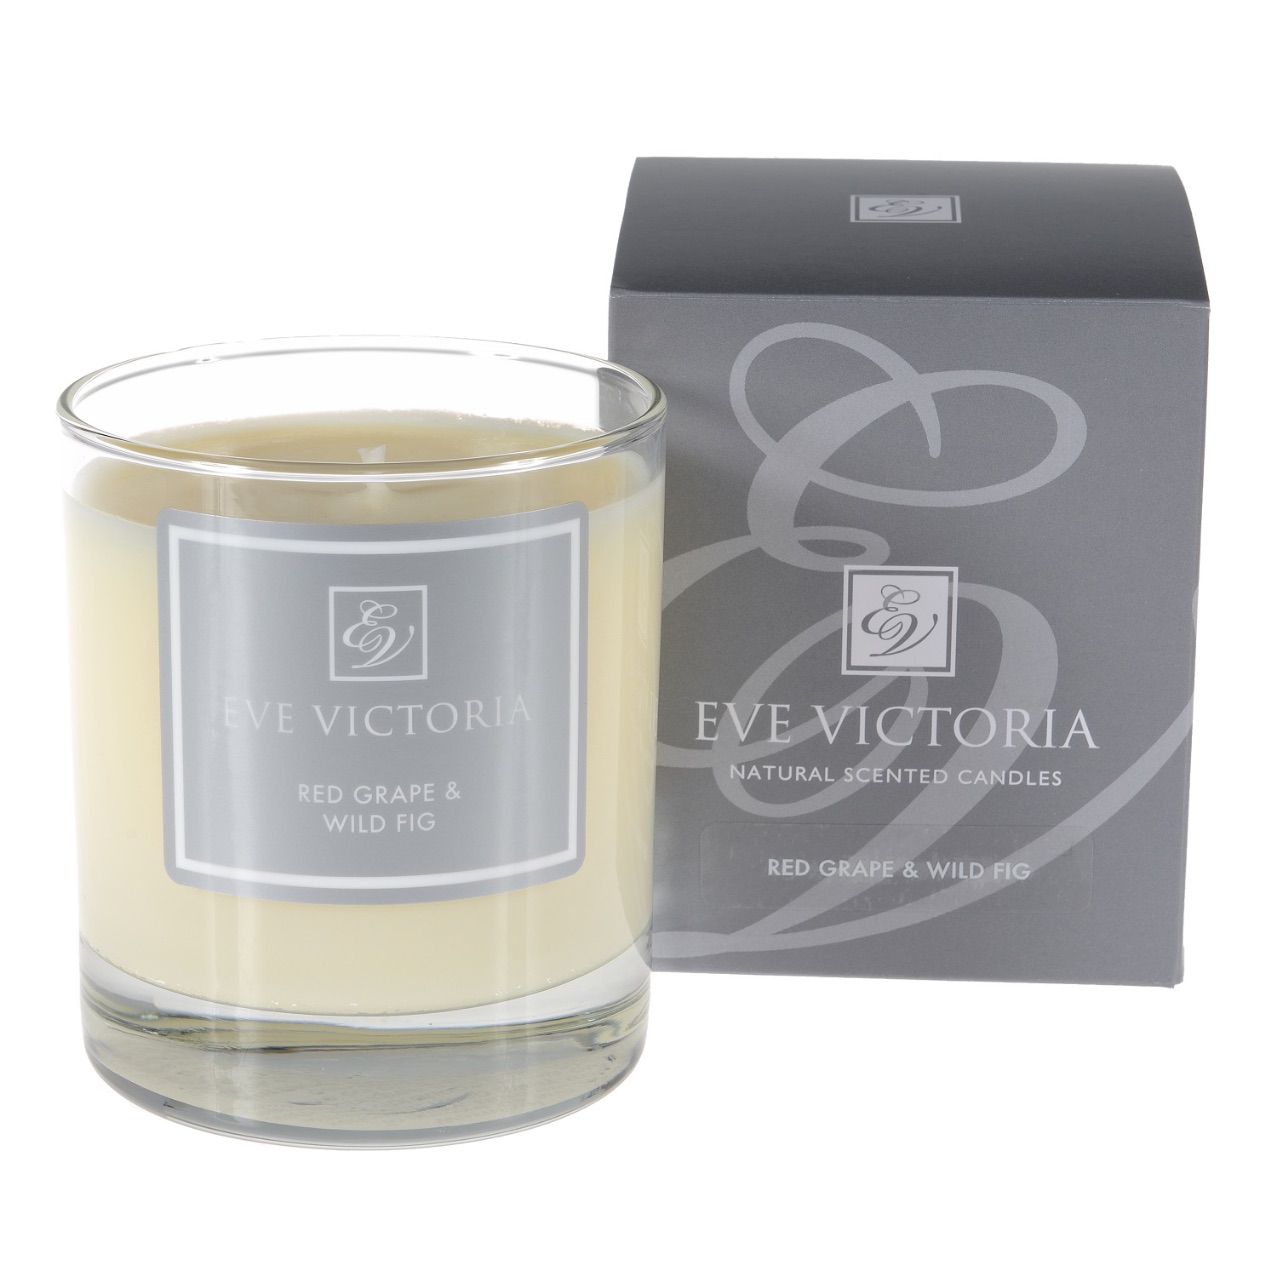 Eve Victoria Red Grape & Wild Fig Small Candle